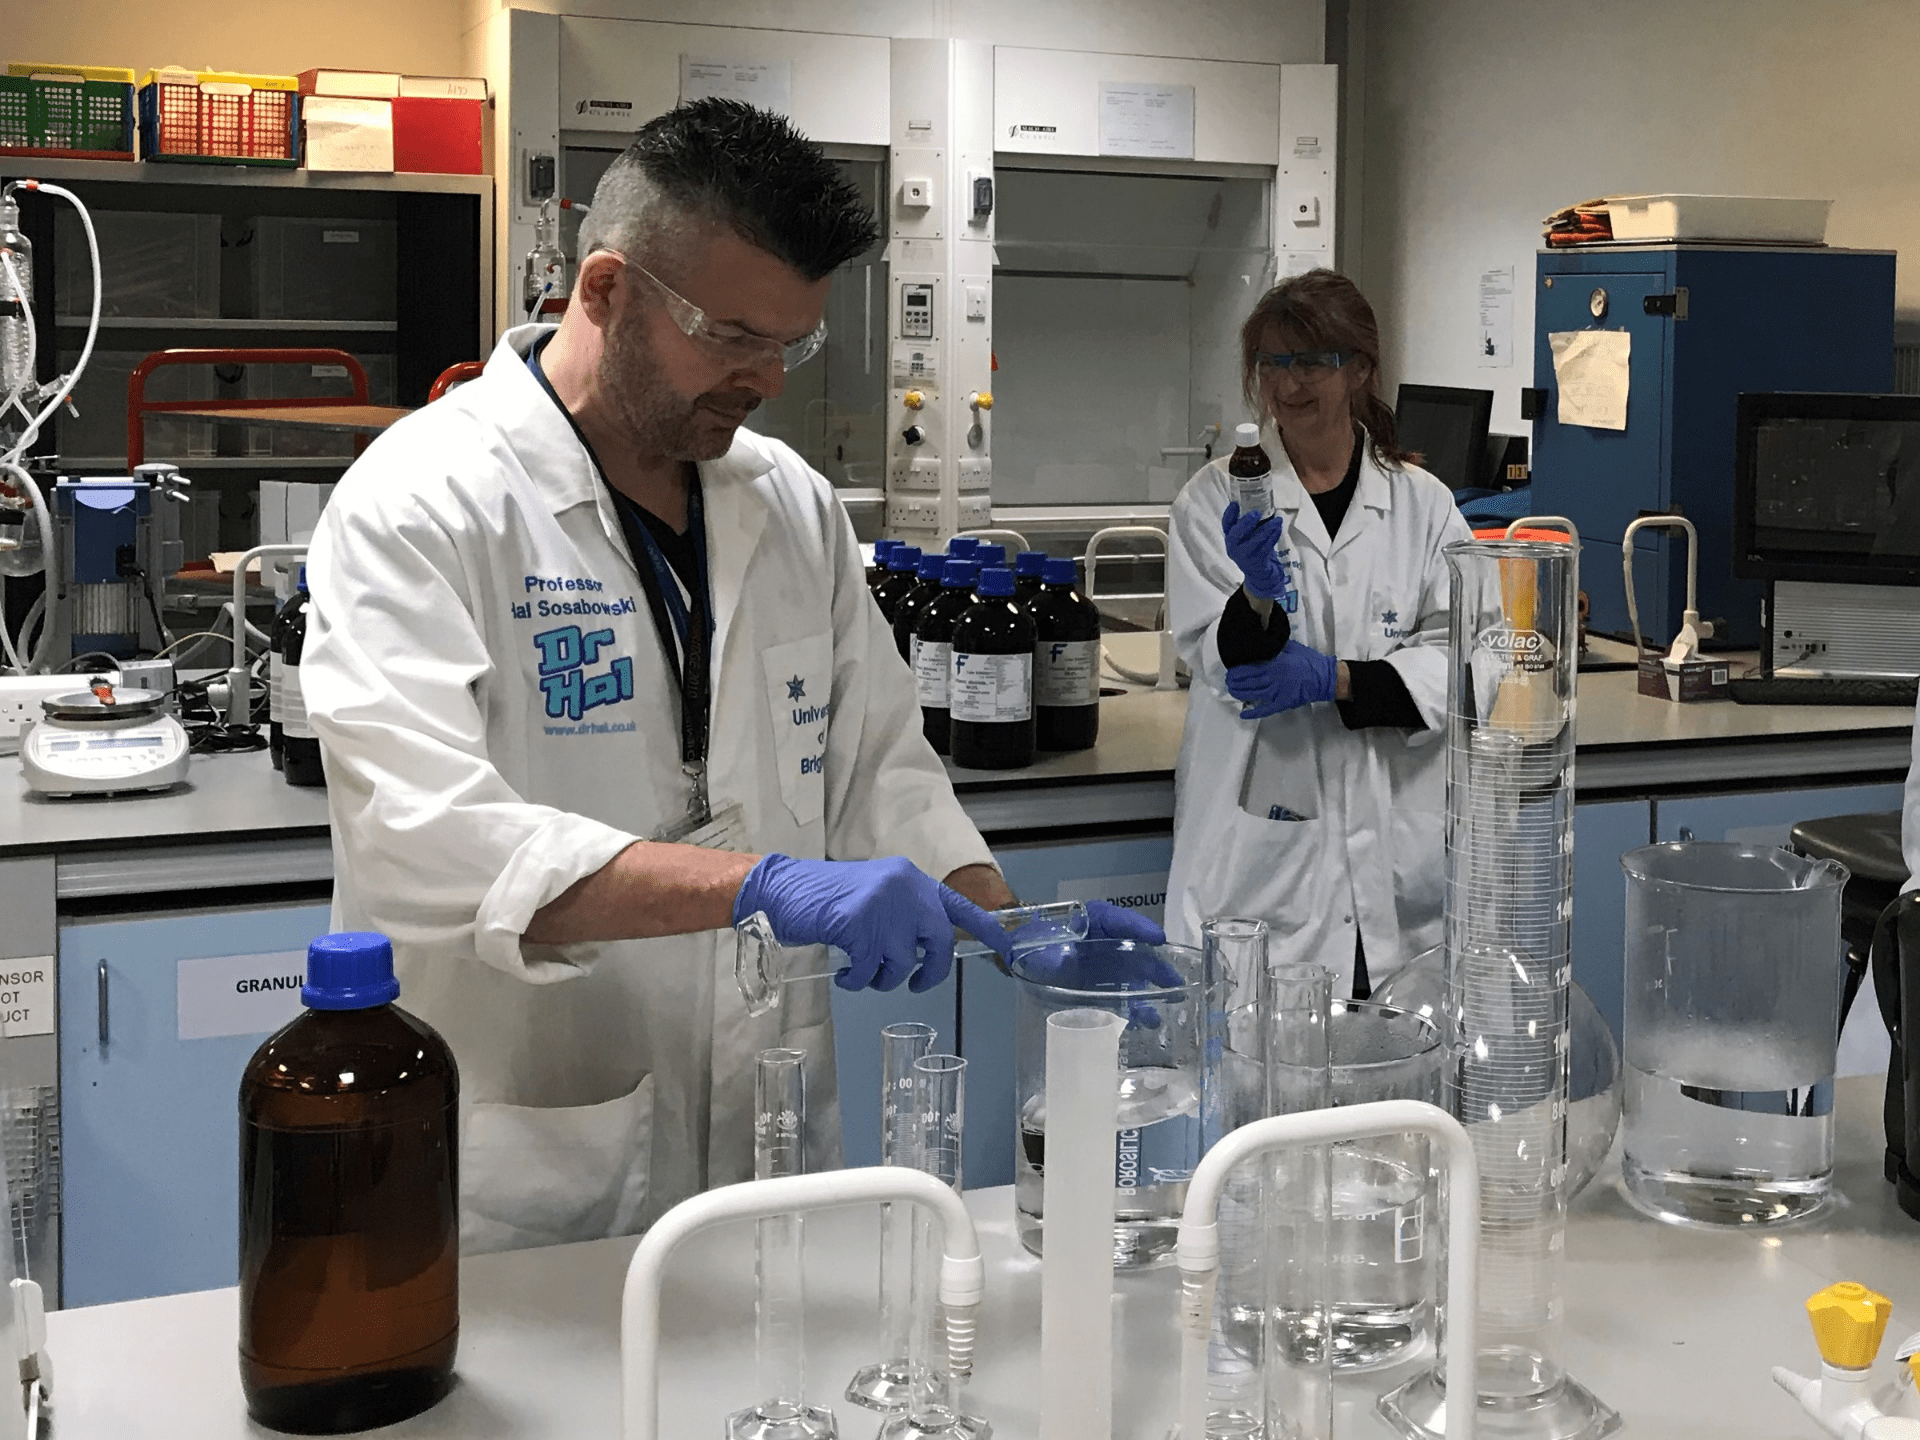 Prof Sosabowski and Dr MacAdam in the lab